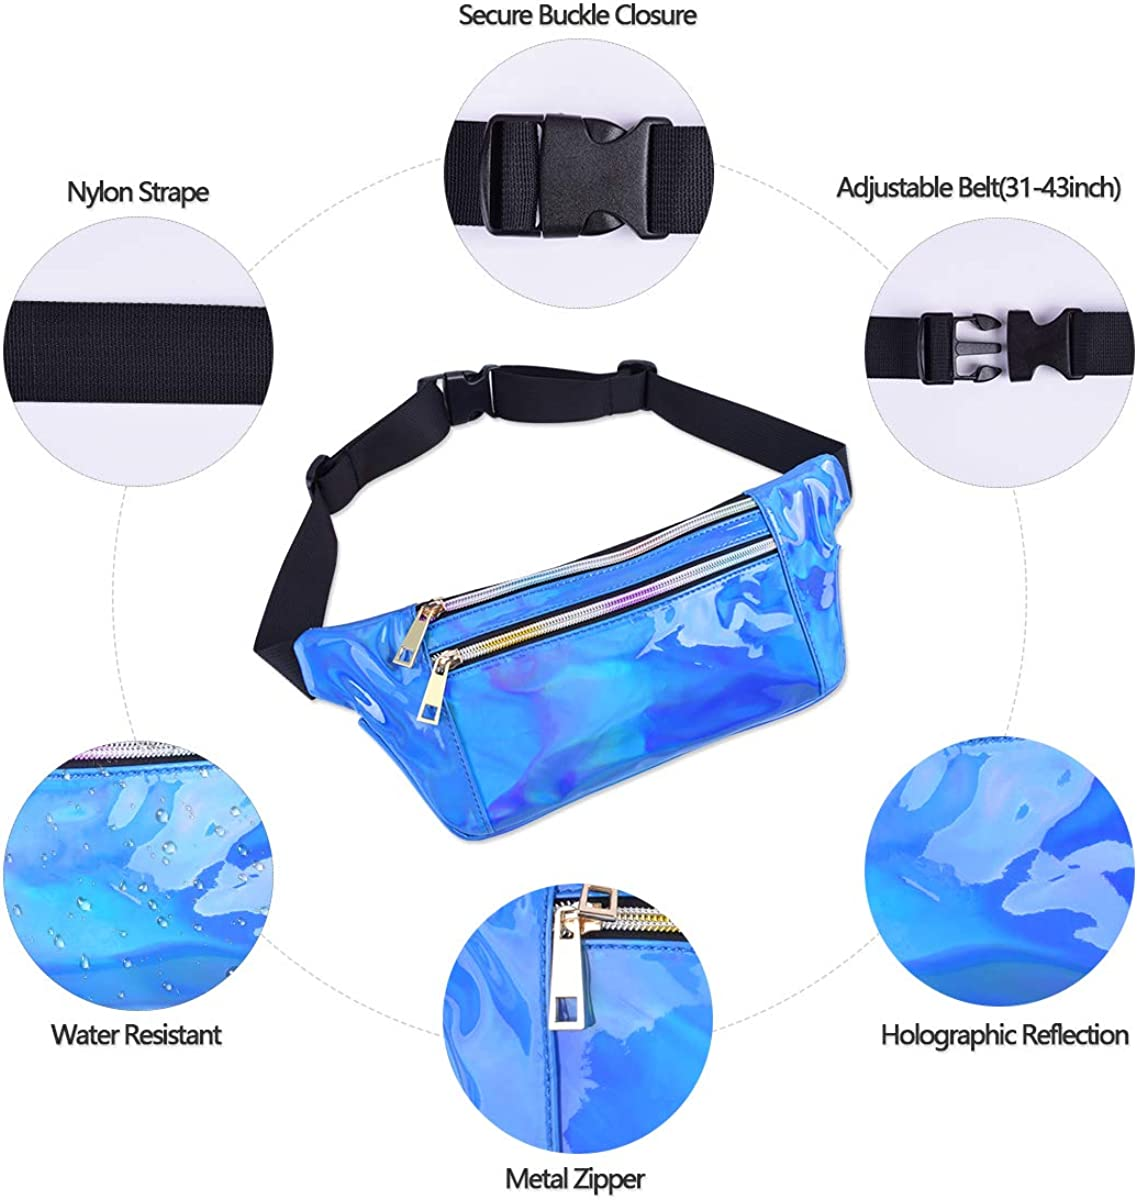 Waterproof Shiny Waist Pack with Adjustable Belt for Festival Hiking Travel Fashion Cool Fanny Packs for Girls Suxman Holographic Fanny Pack for Women and Men Party